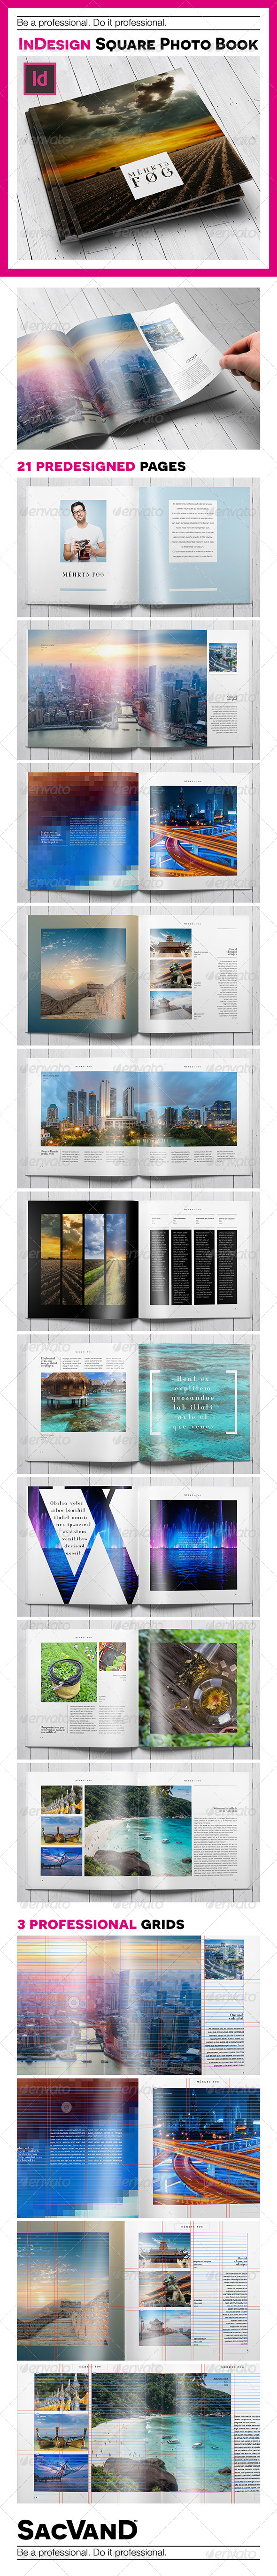 GraphicRiver Indesign square photo book template 8302262